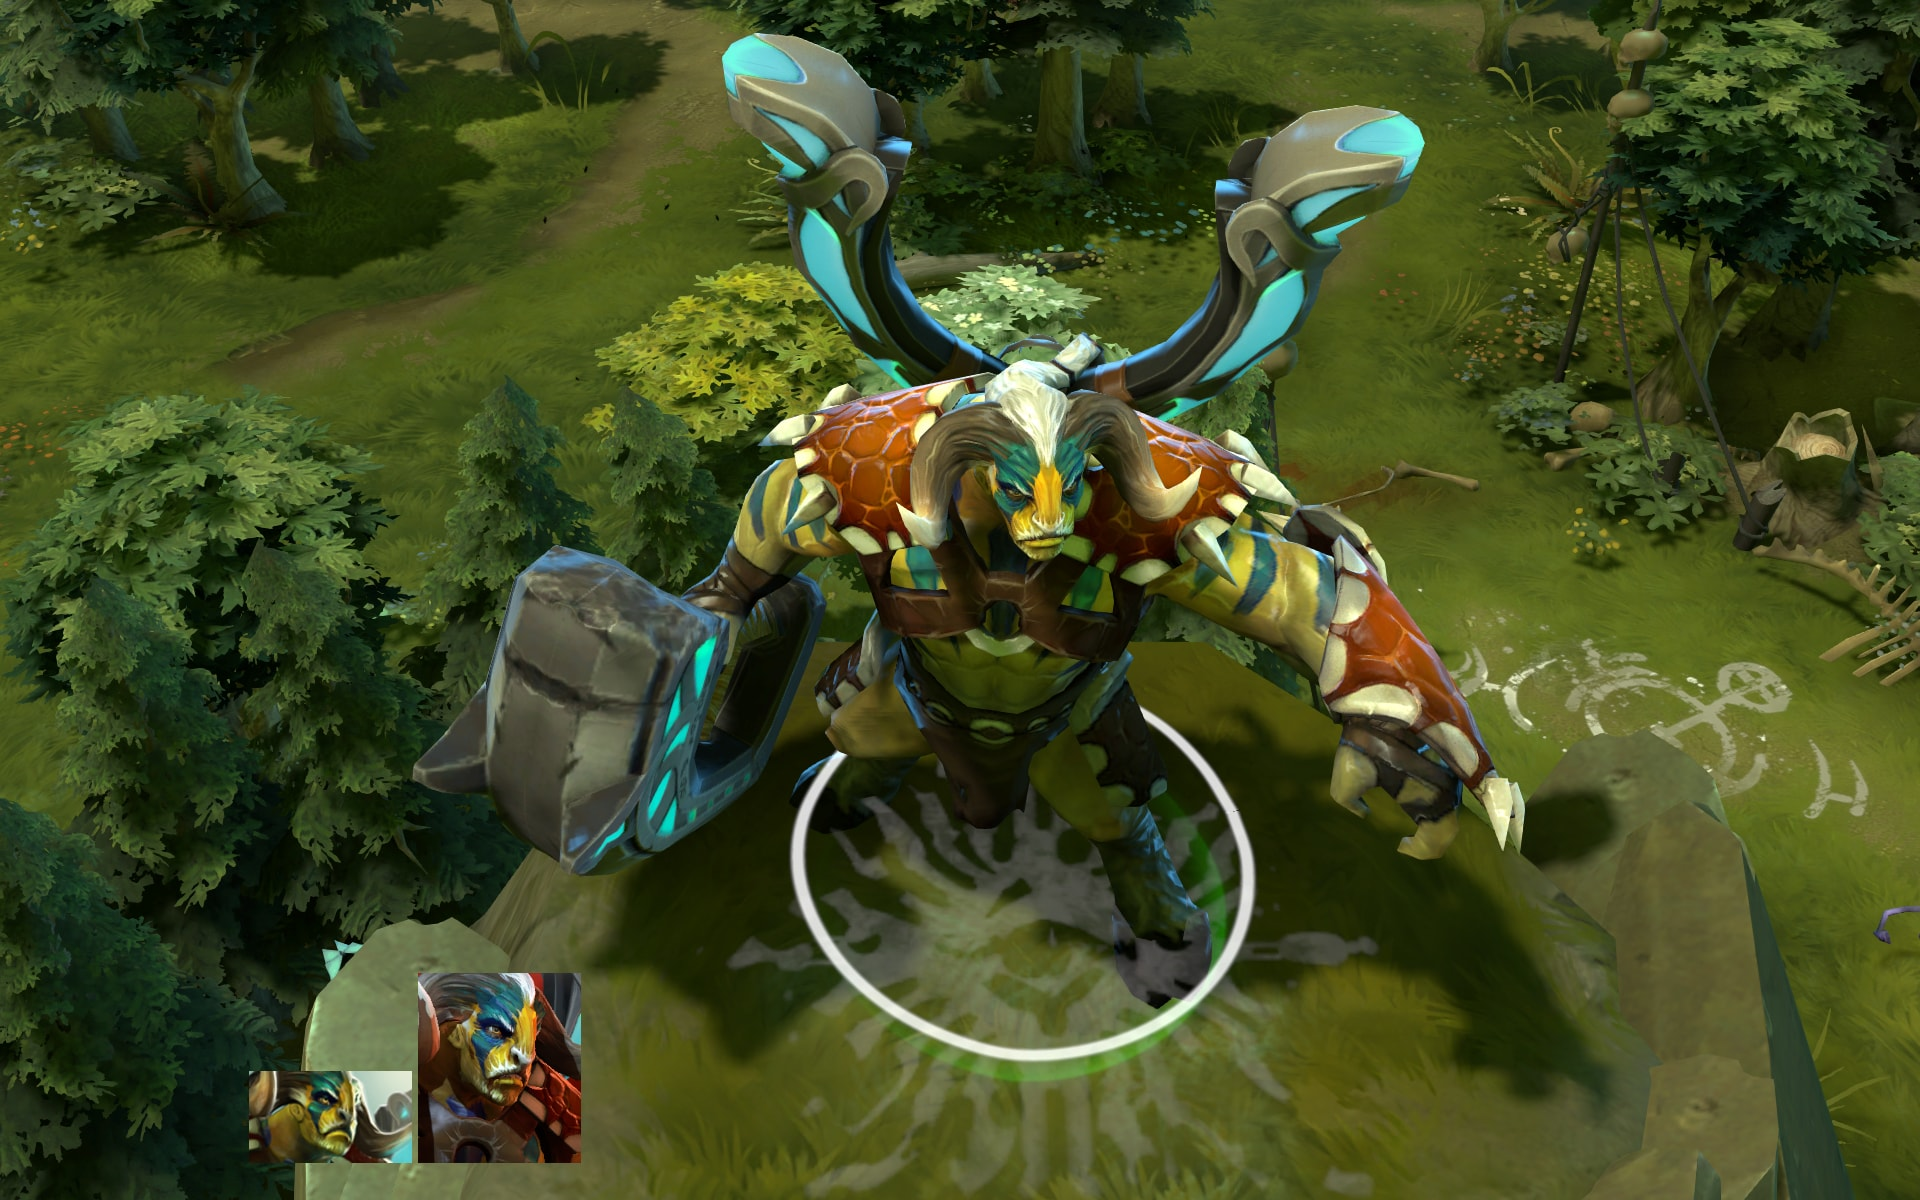 Dota2 : Elder Titan widescreen for desktop